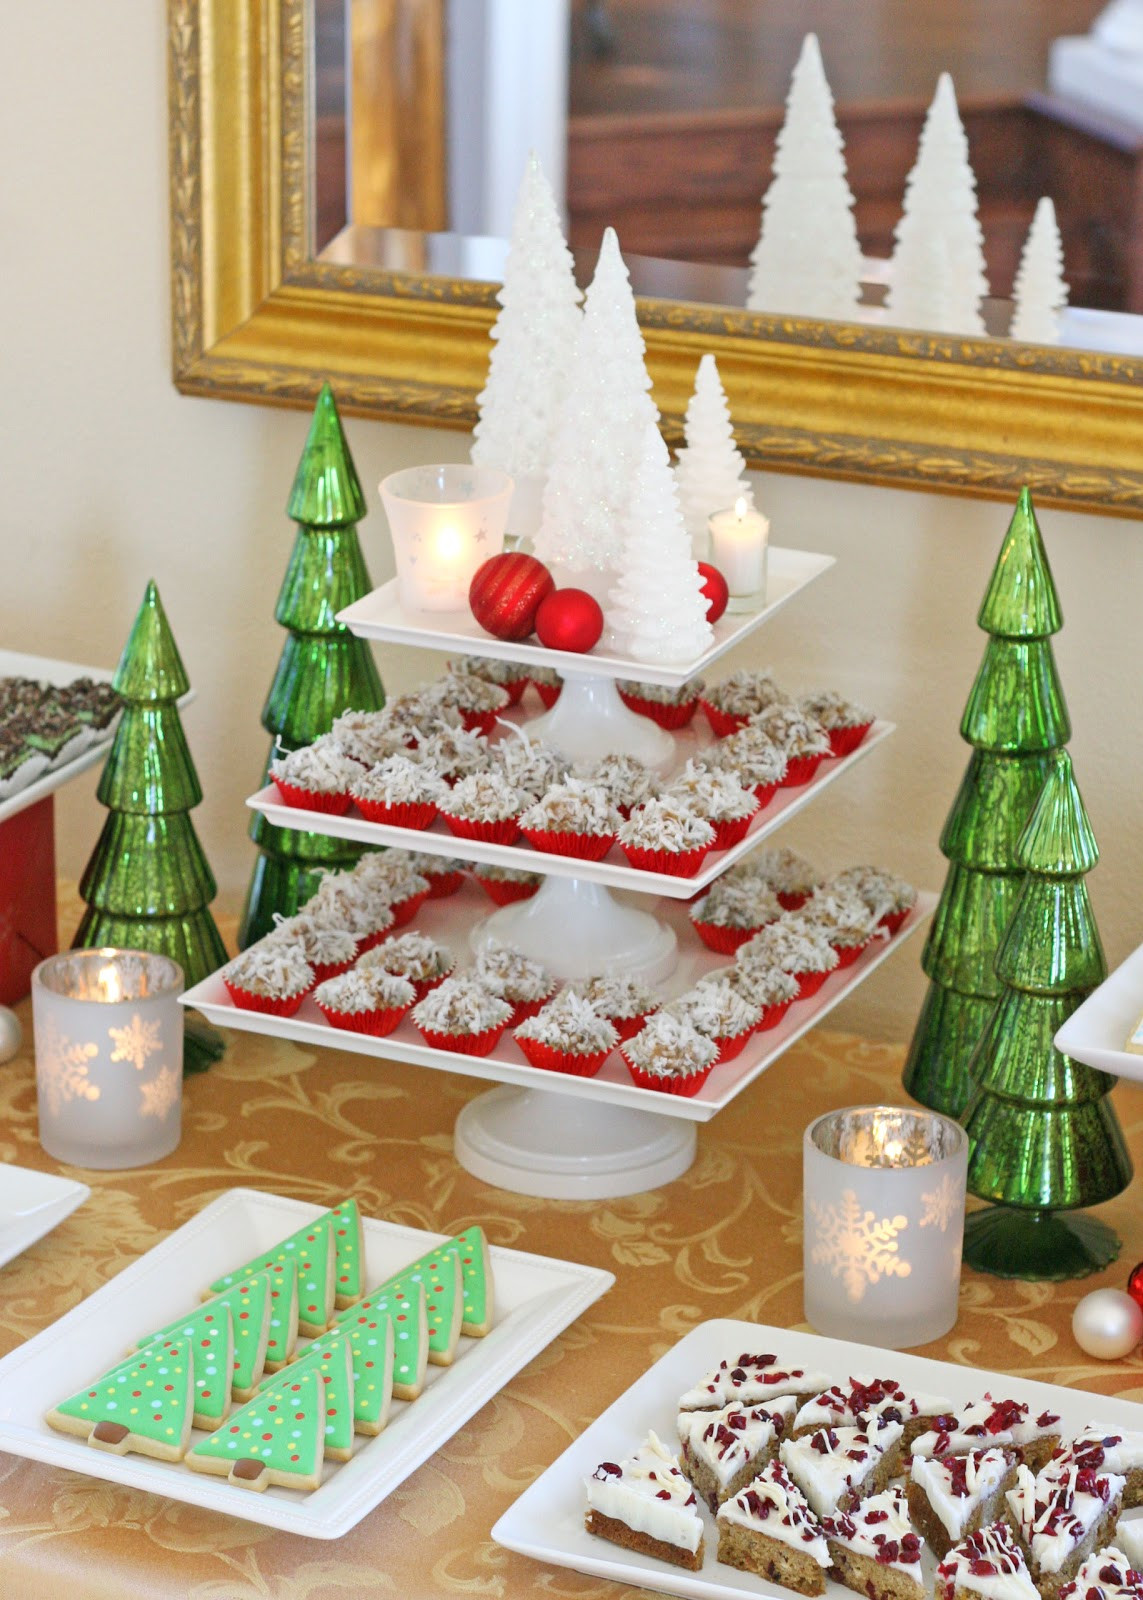 Classic Christmas Desserts  Classic Holiday Dessert Table – Glorious Treats